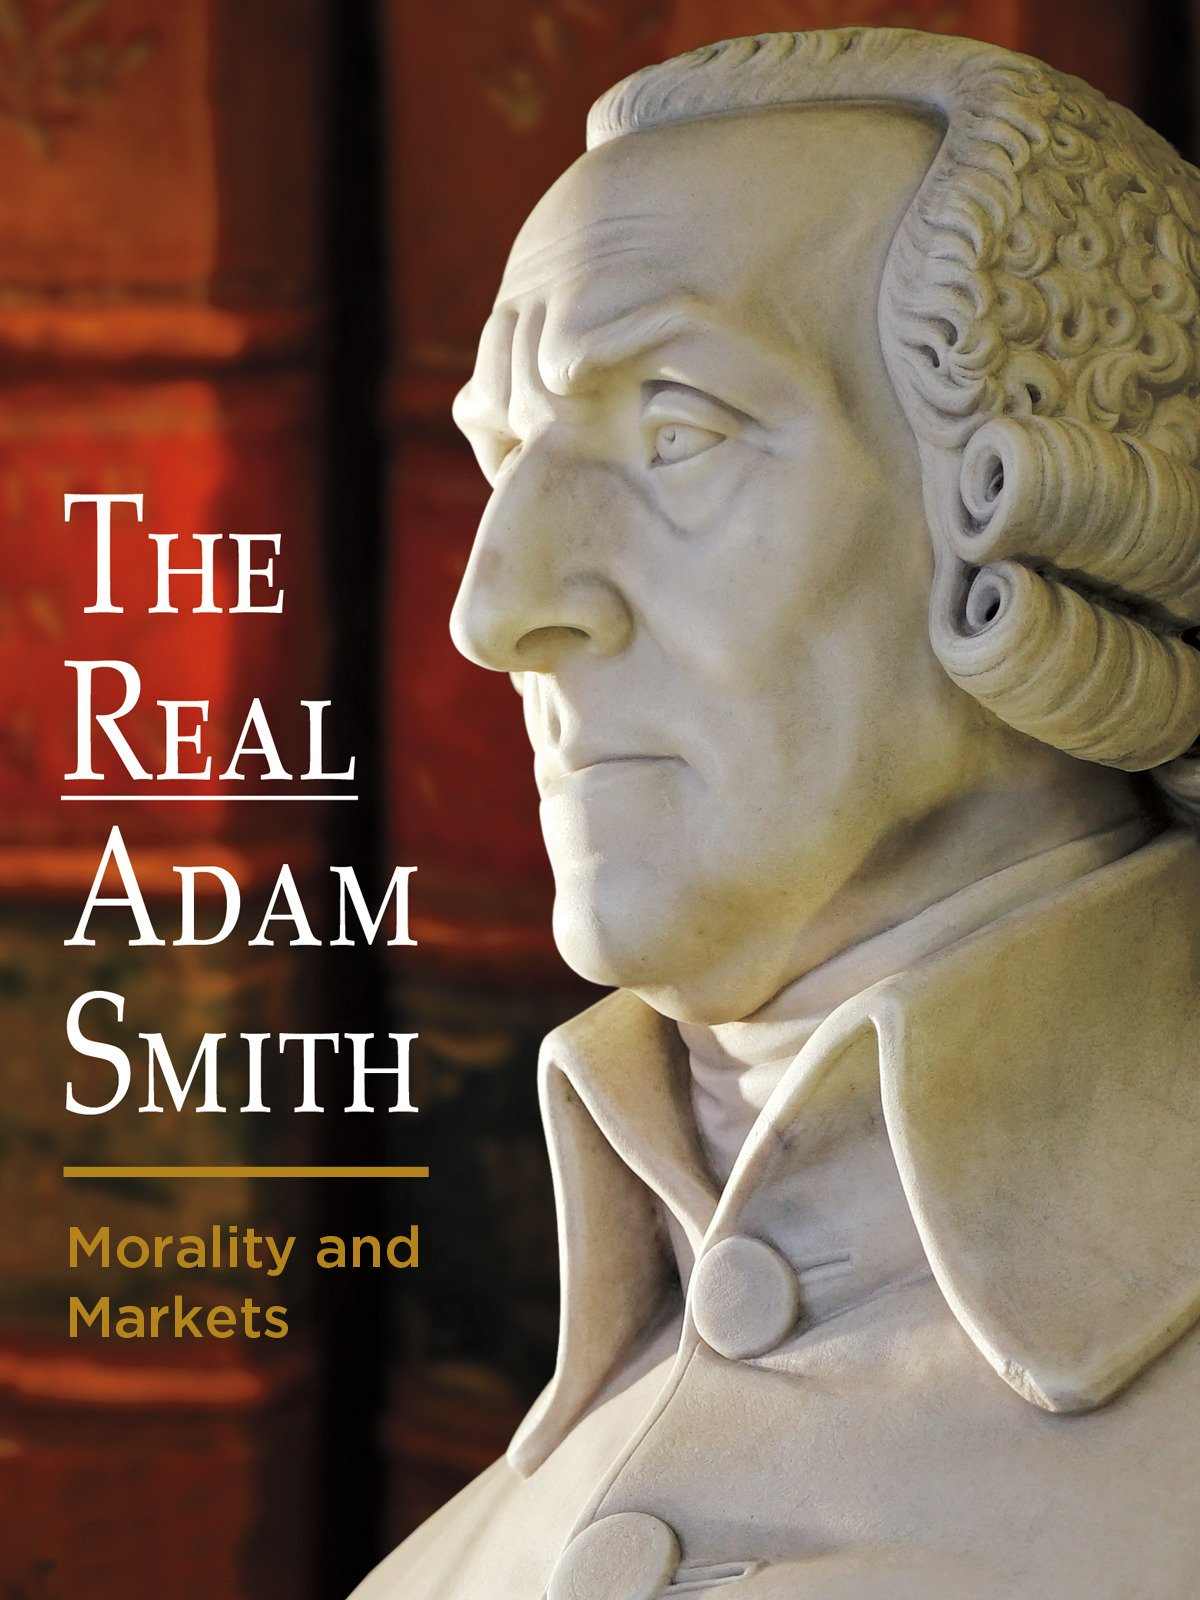 The Real Adam Smith: Morality and Markets on Amazon Prime Video UK